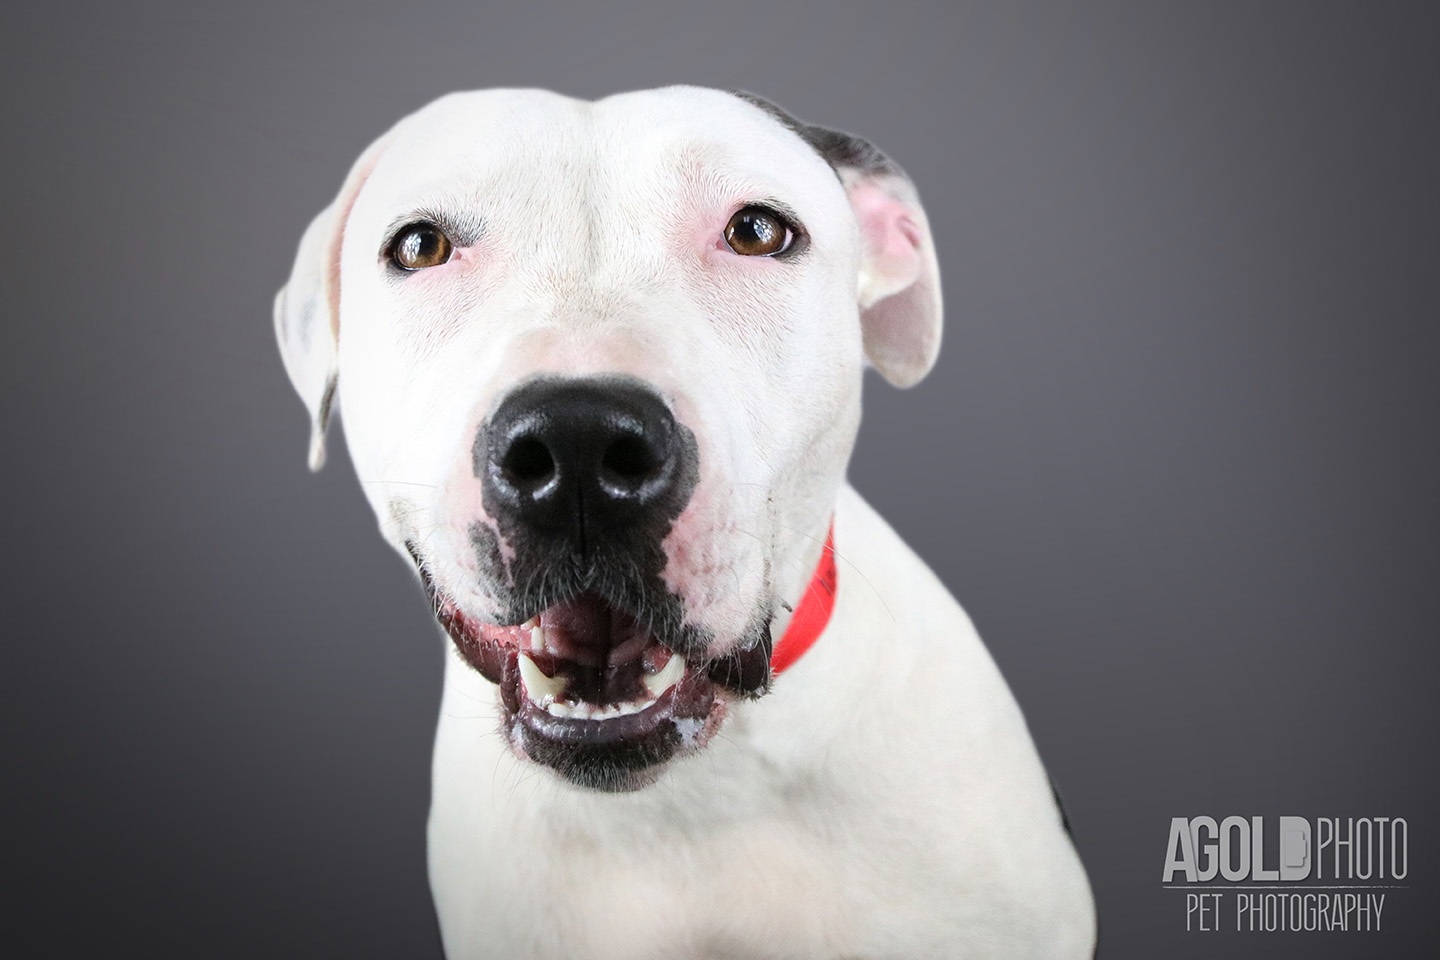 ruthie_agoldphoto-tampa-pet-photography__agoldphoto-tampa-pet-photography_